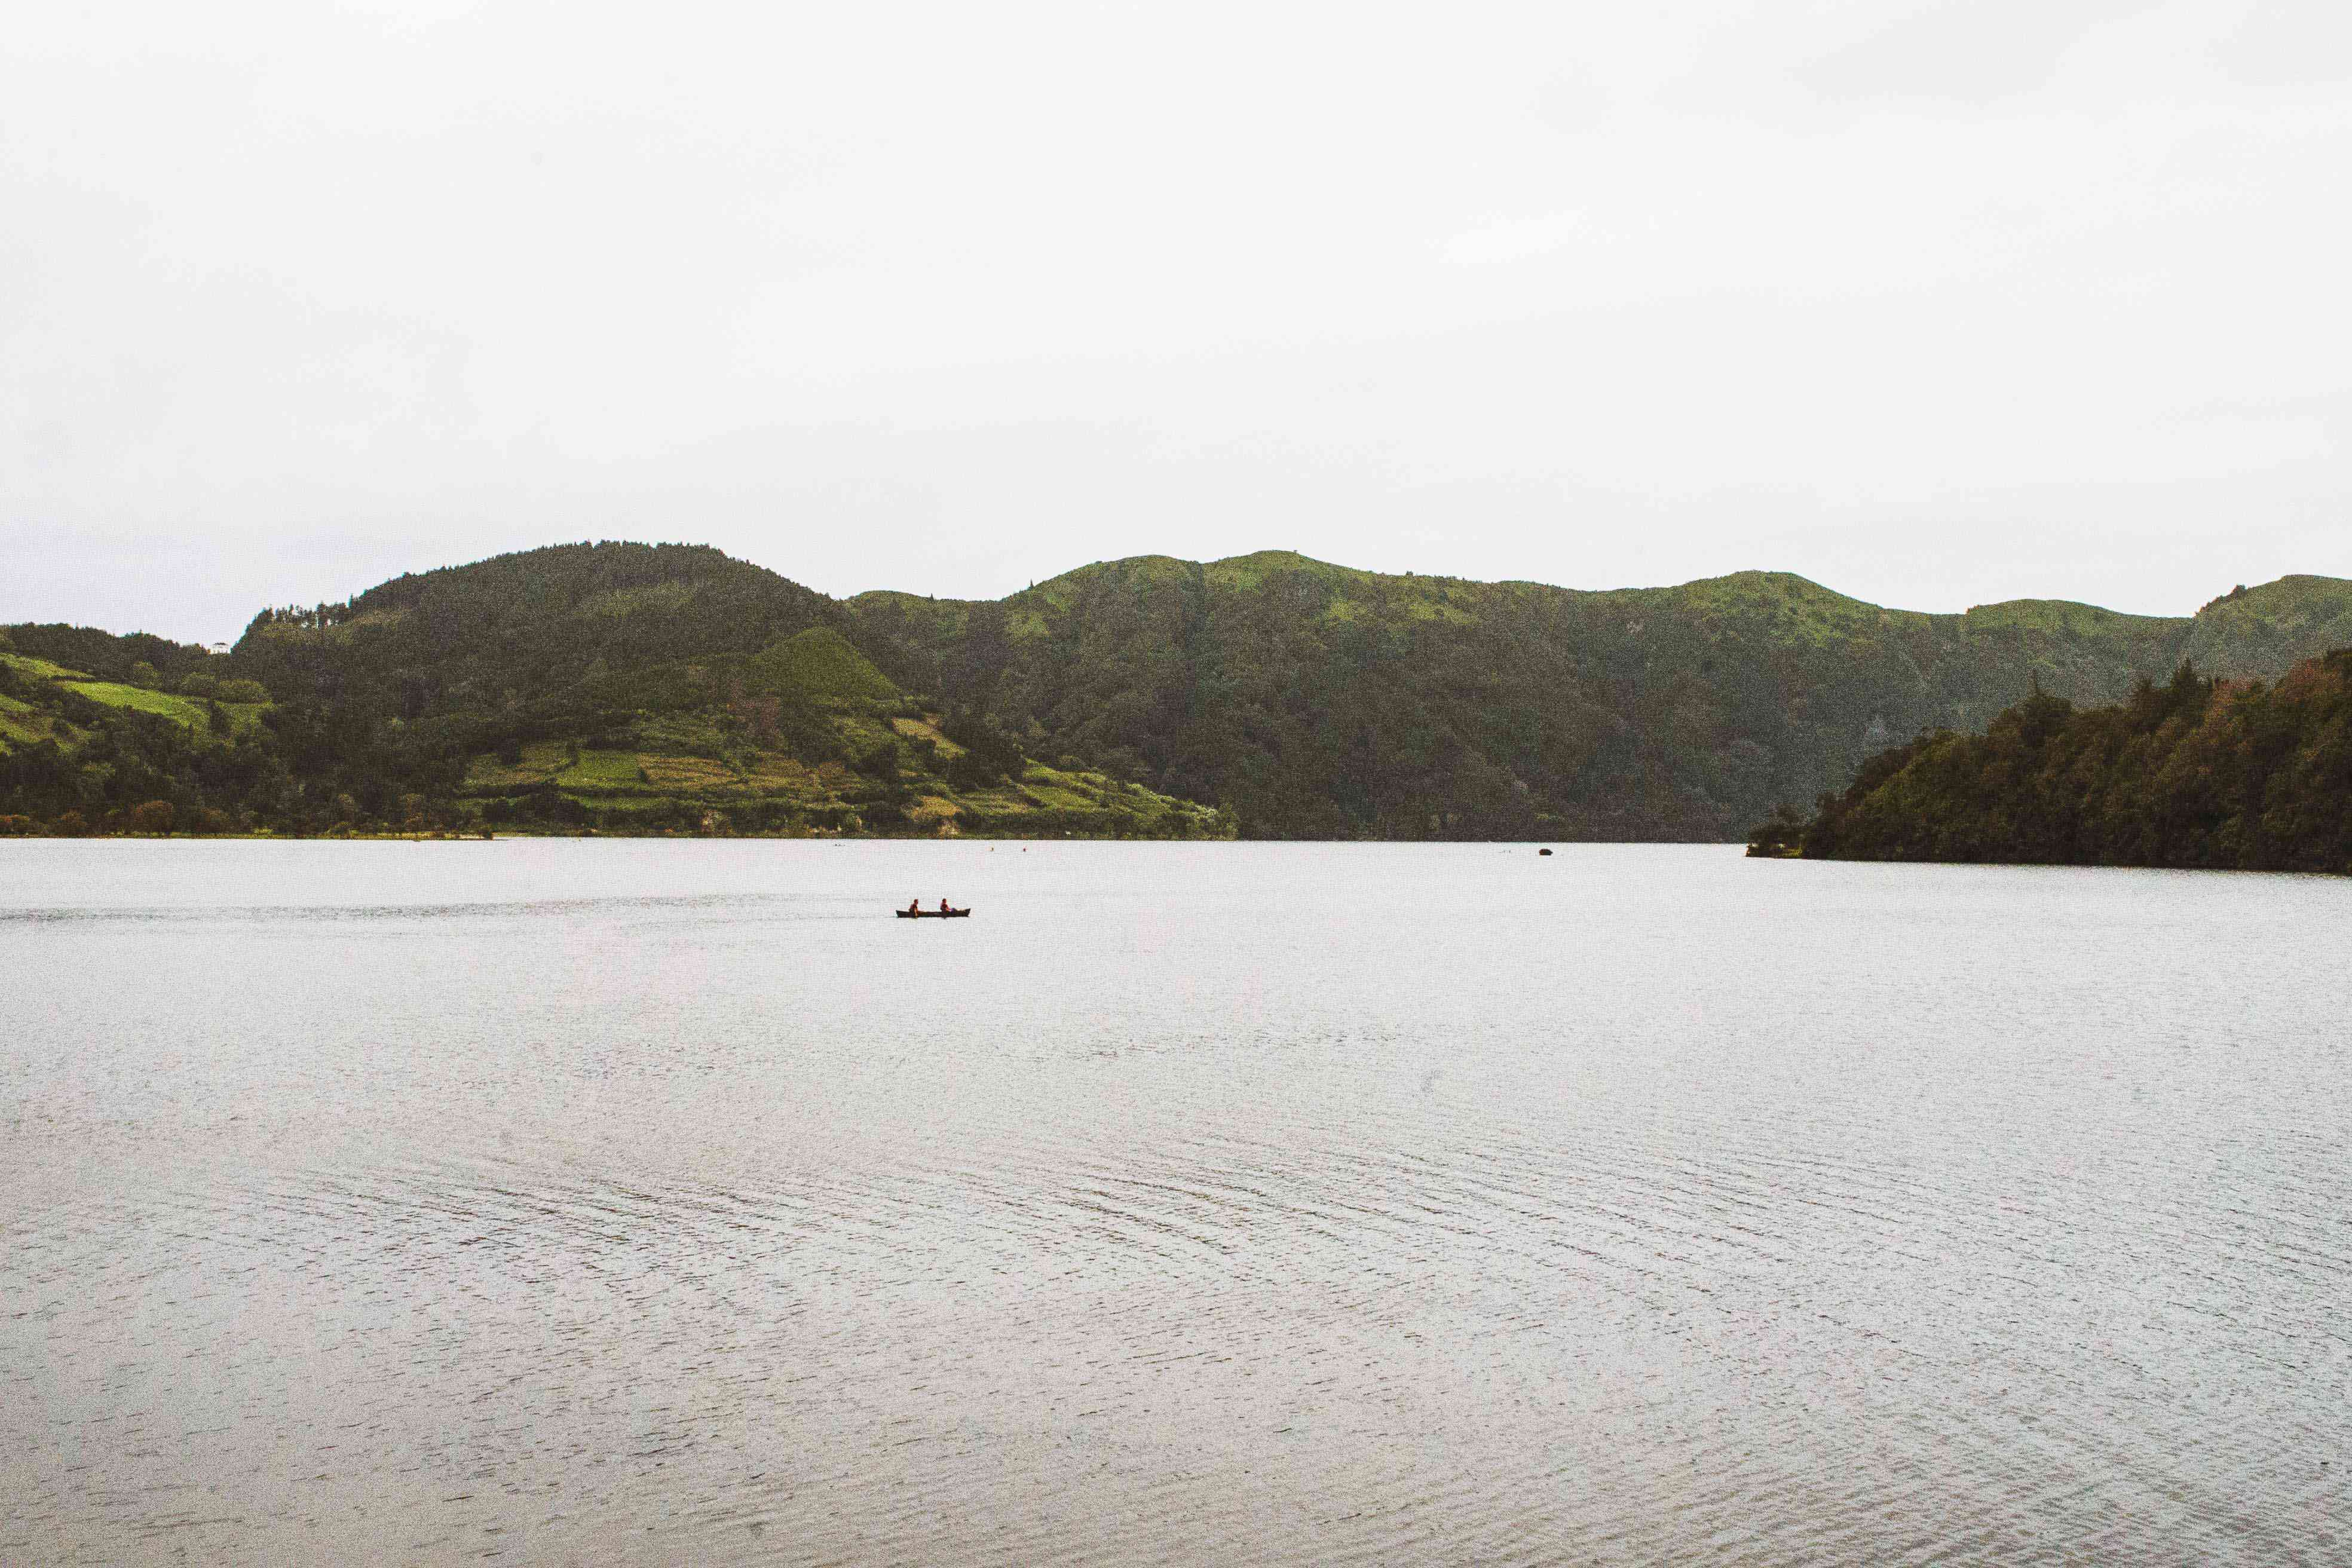 People canoeing on a lake in the azores